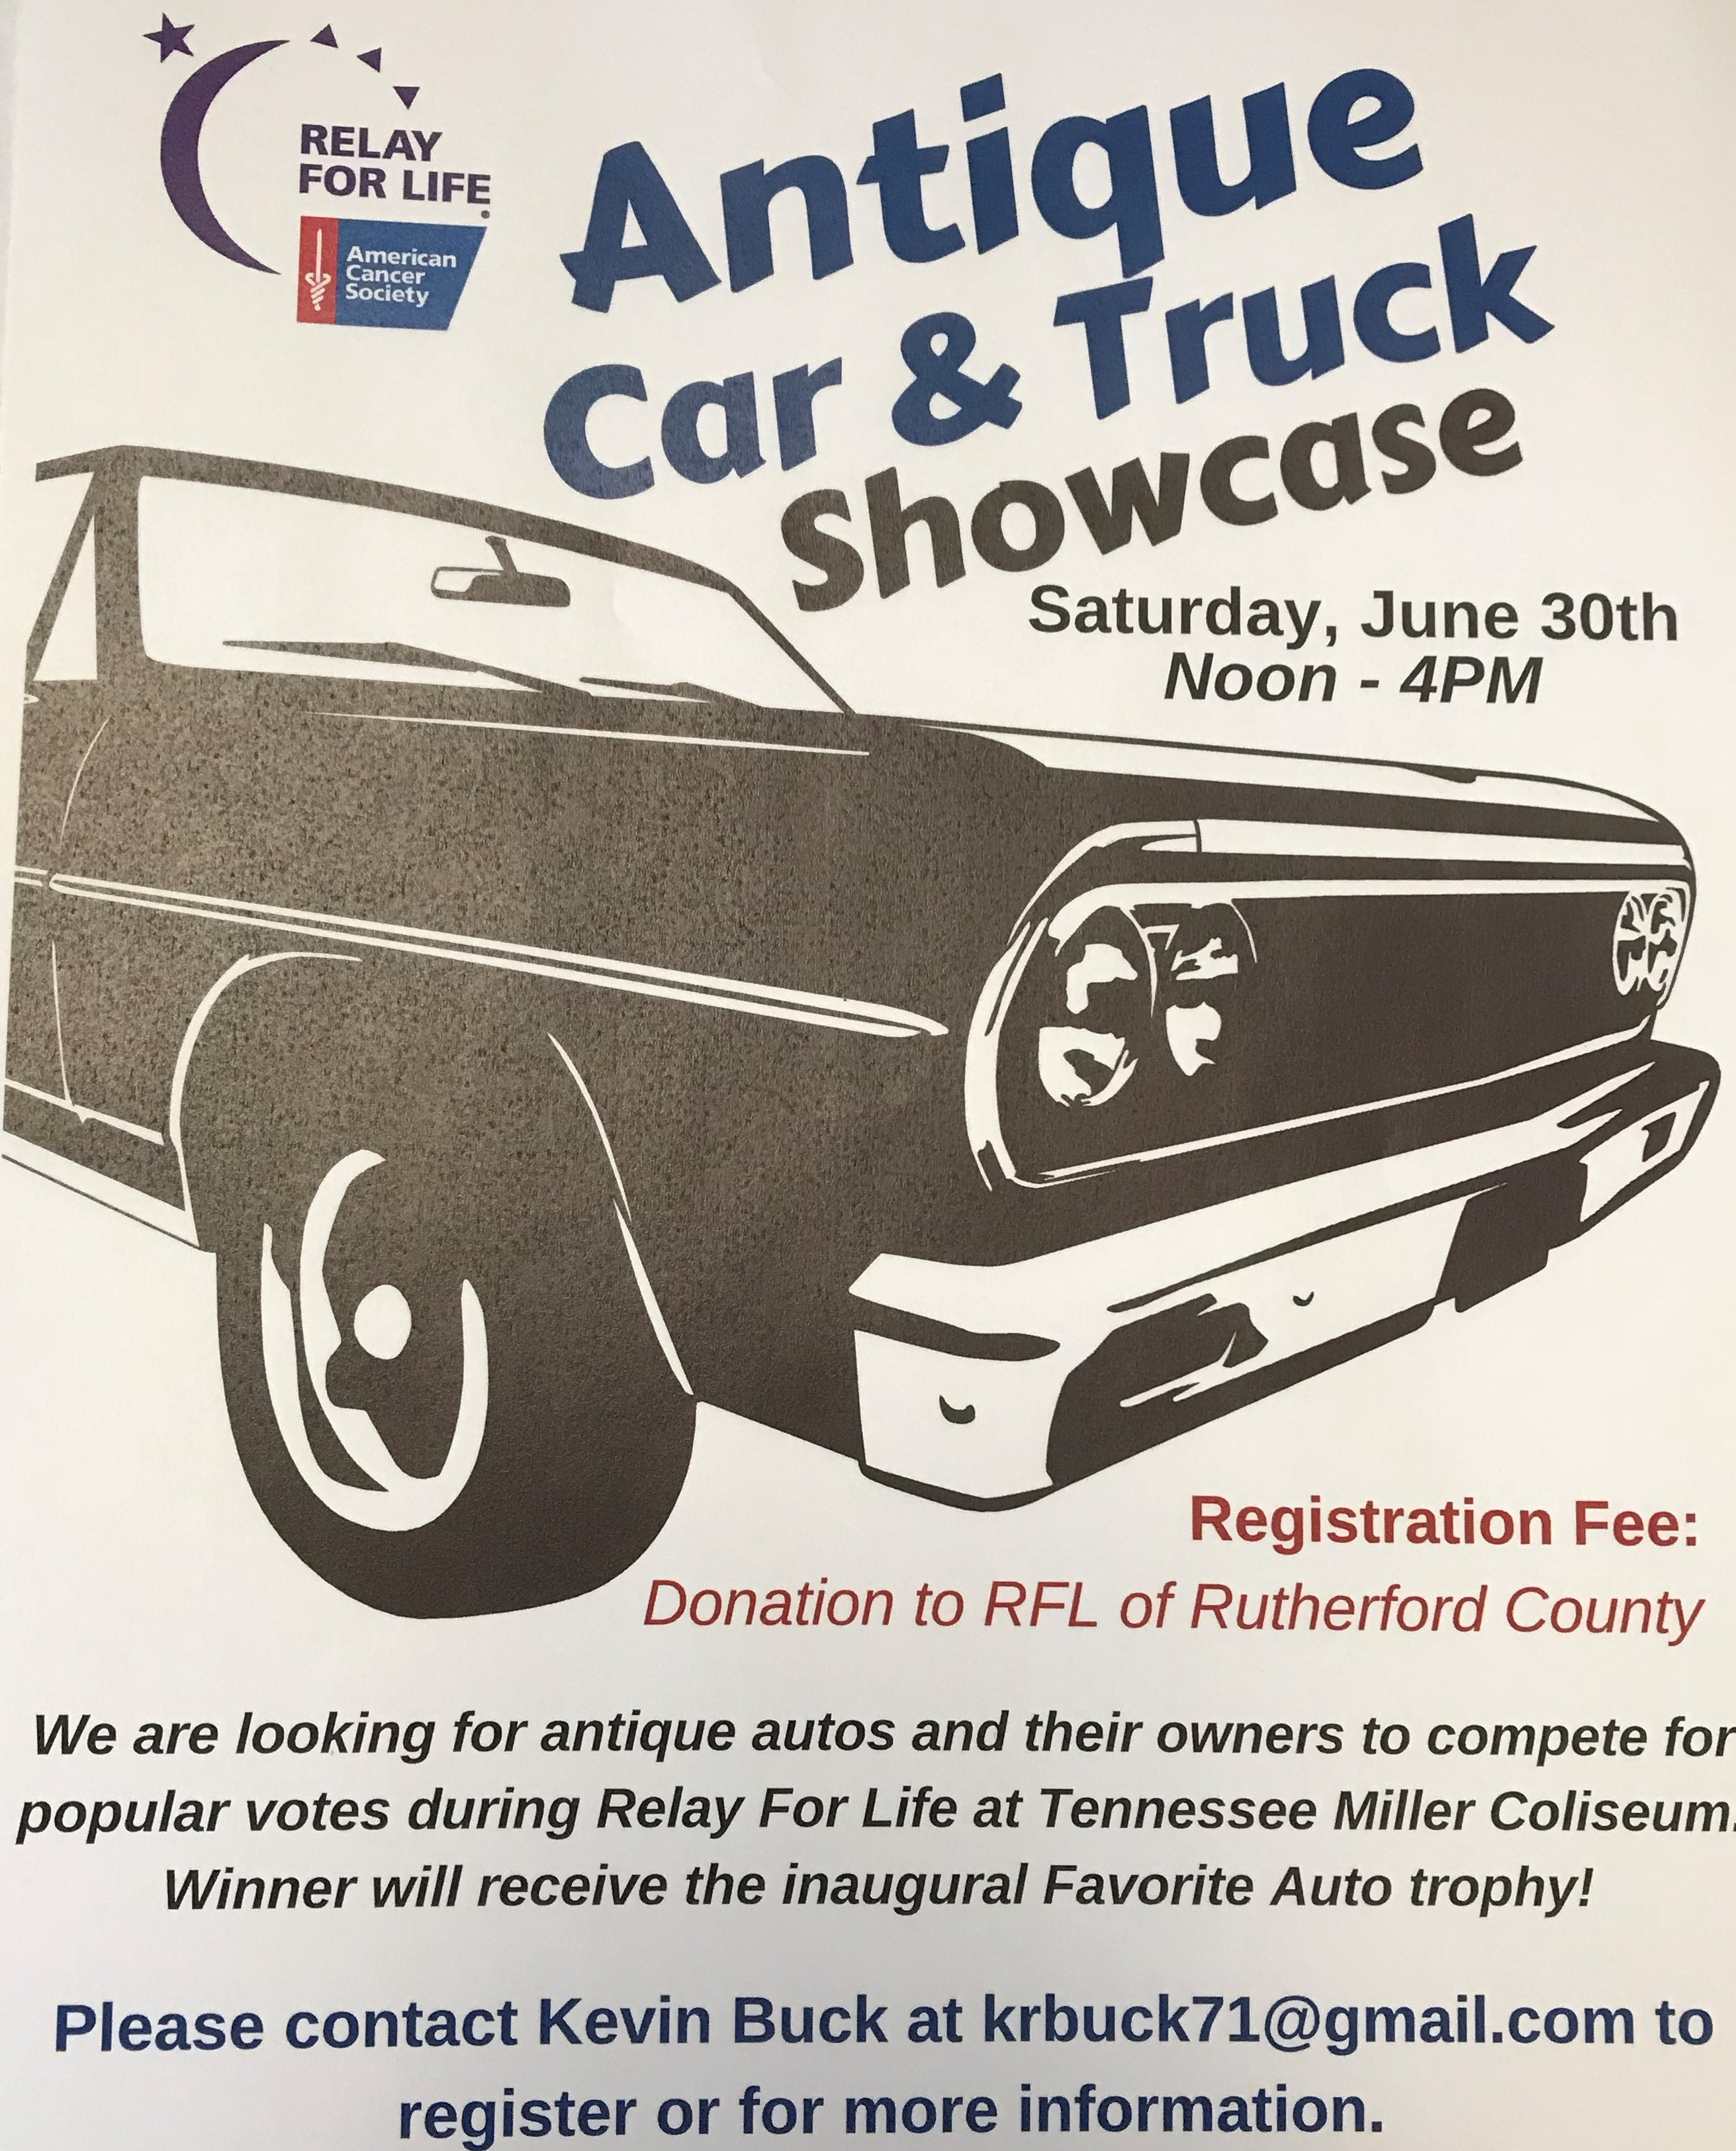 Relay For Life Antique Car and Truck Showcase - Honk, Rattle & Roll ...